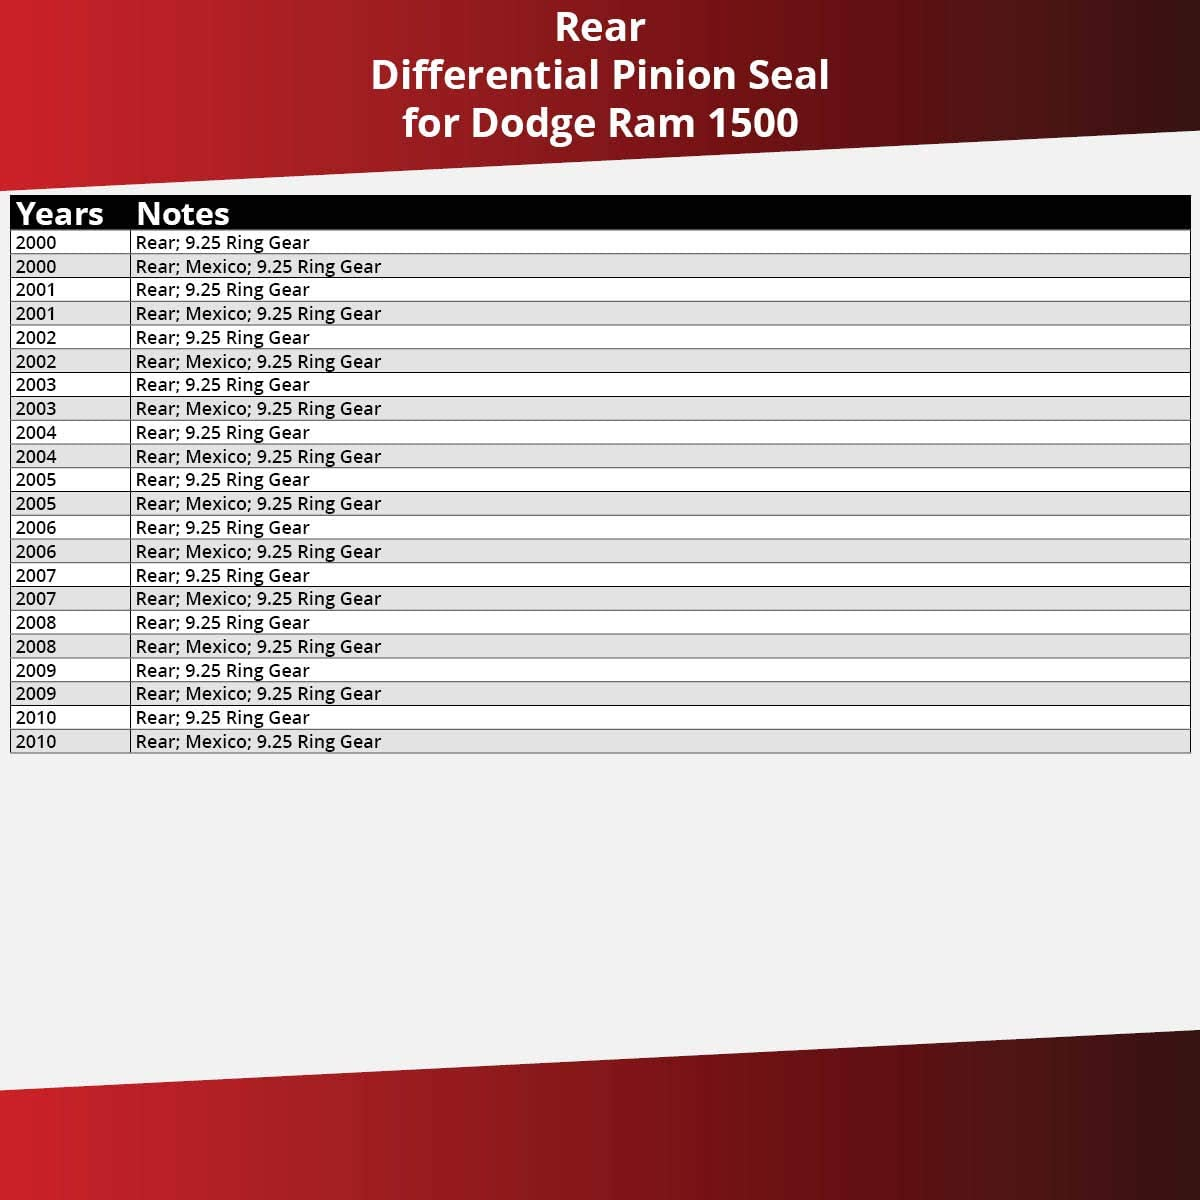 SKF Rear Differential Pinion Seal for 2000-2010 Dodge Ram 1500 Transaxle Sealing Gaskets